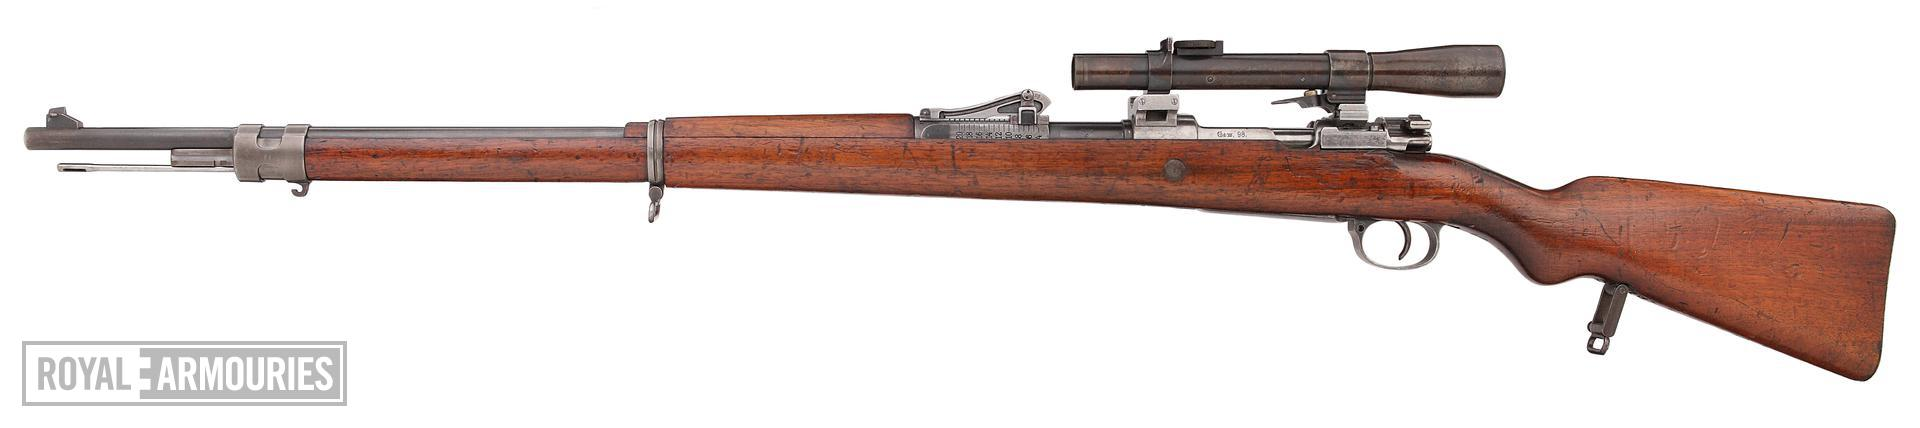 Centrefire bolt-action rifle - Mauser Gewehr 98 (G98) rifle fitted with Goerz scope (about 1915)(1).jpg